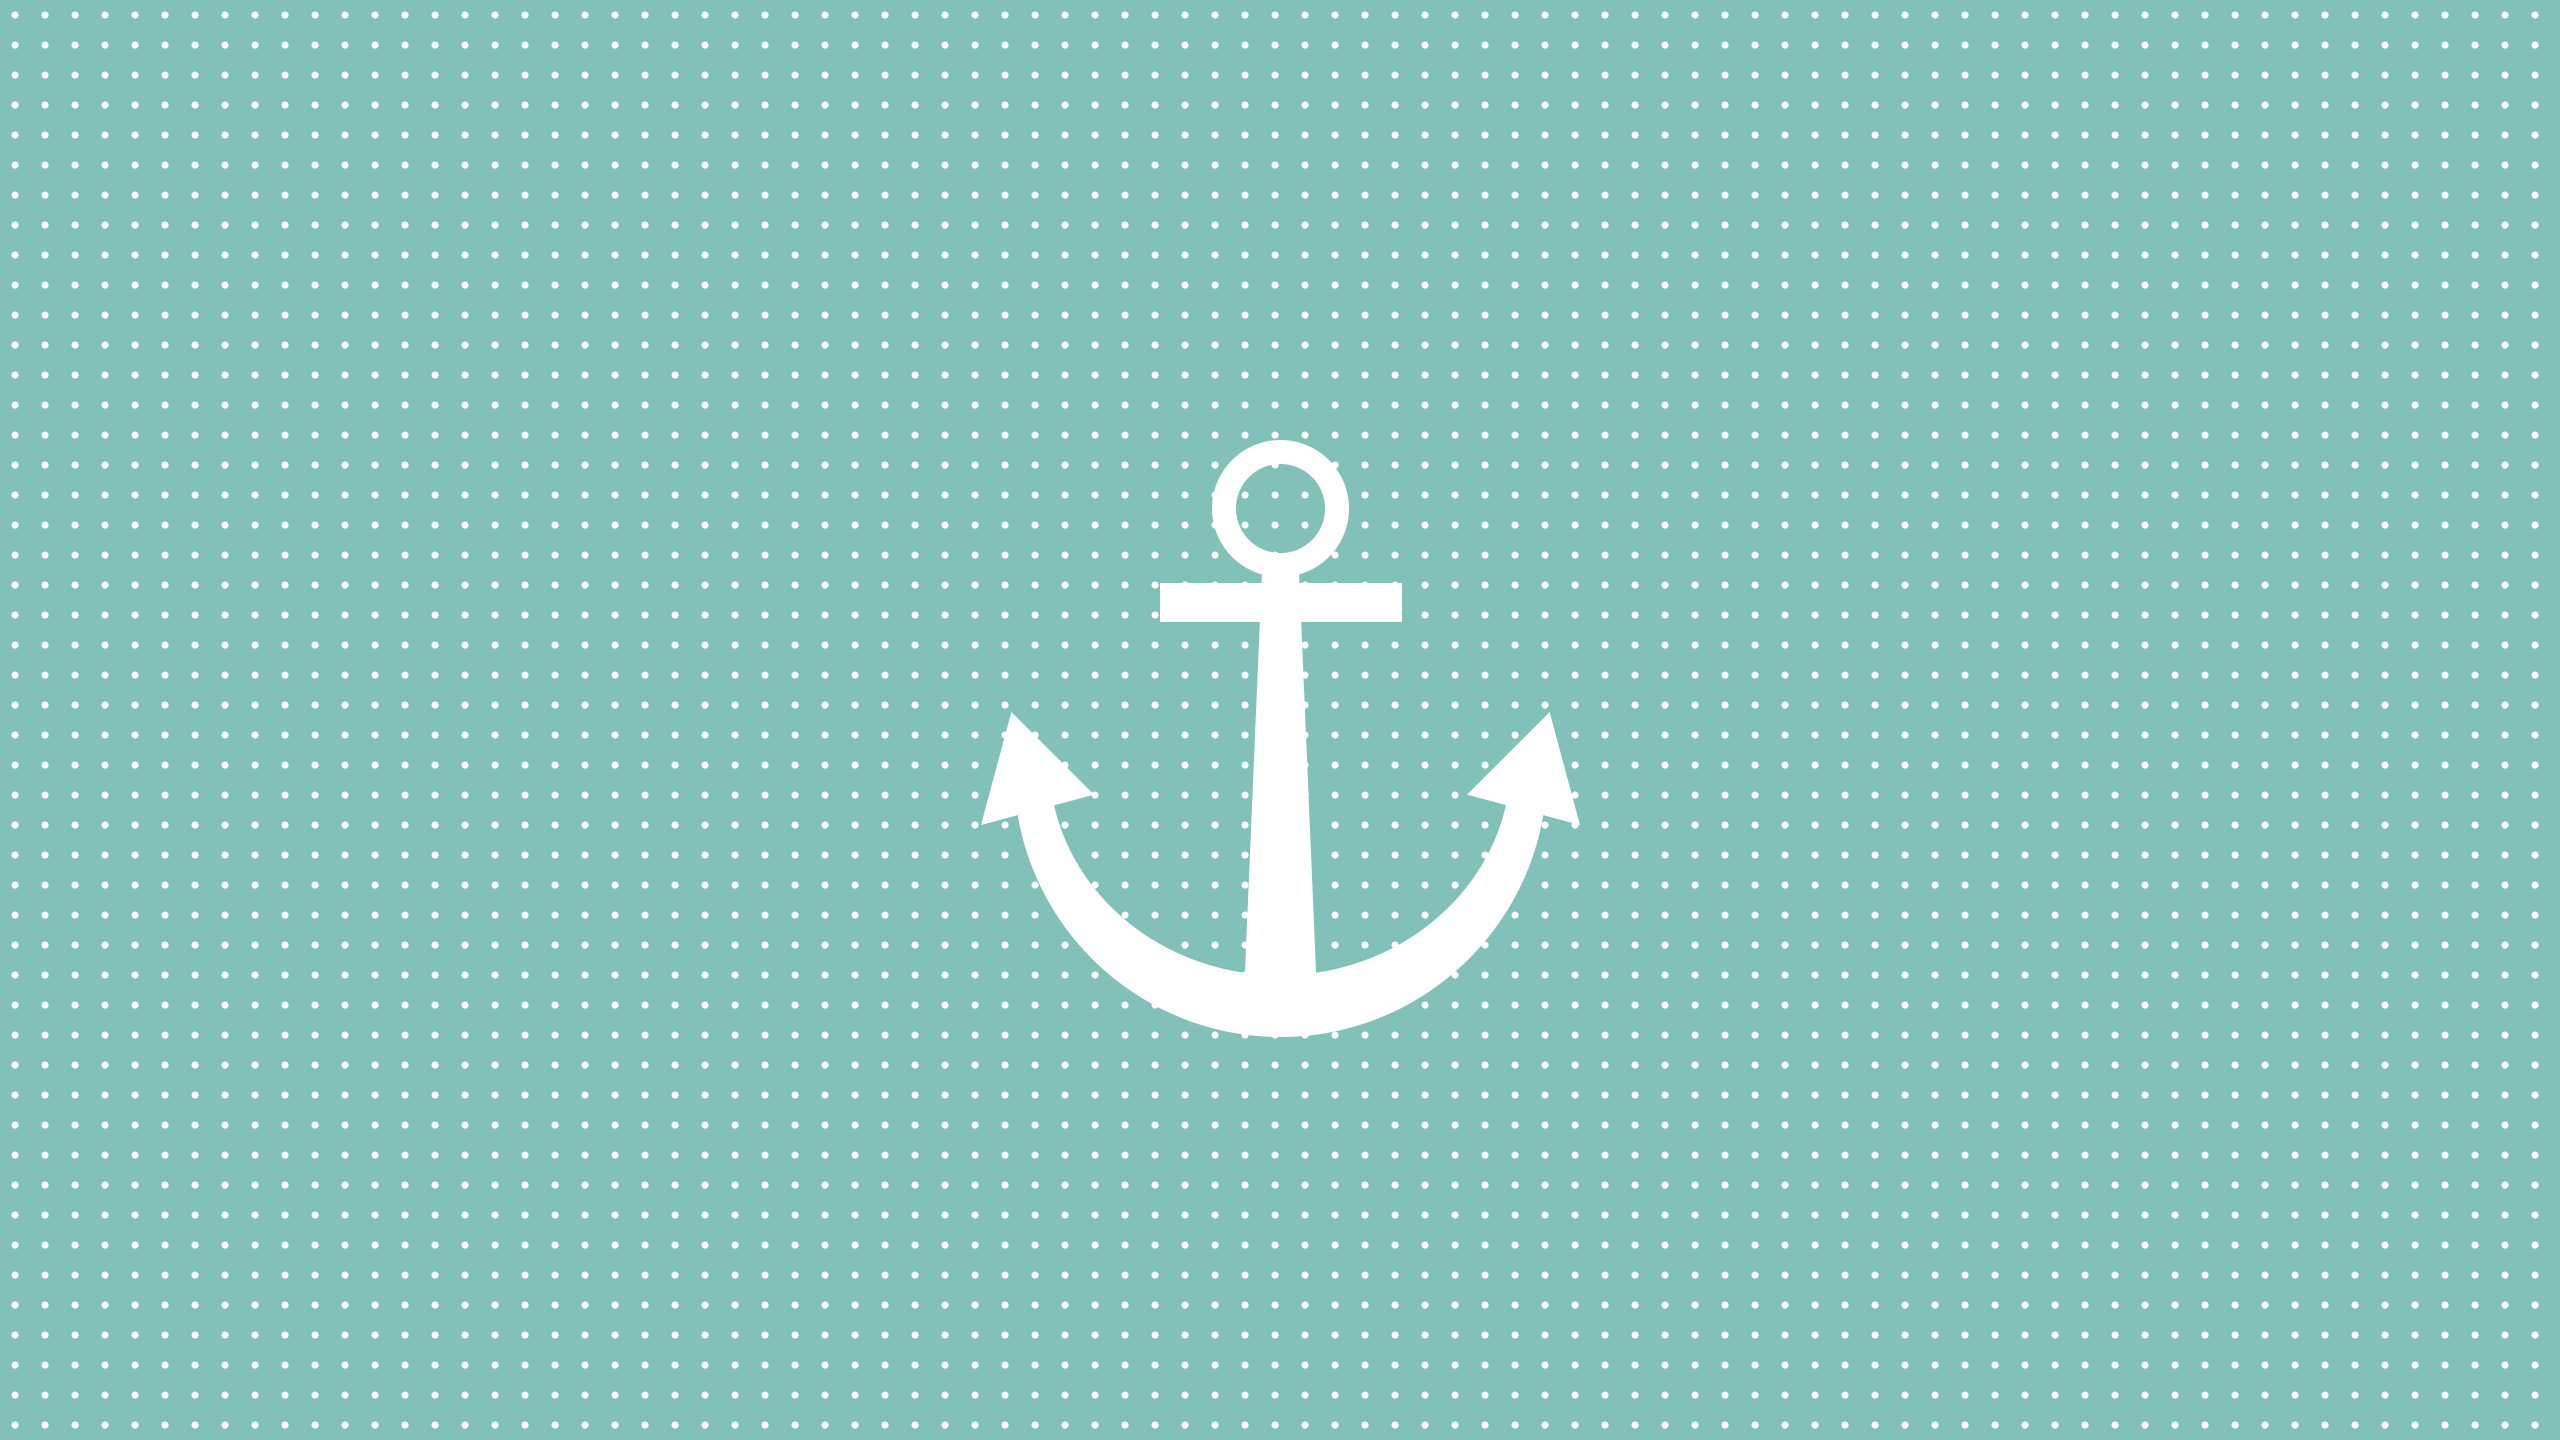 anchor wallpapers to download mfcreative 2560x1440